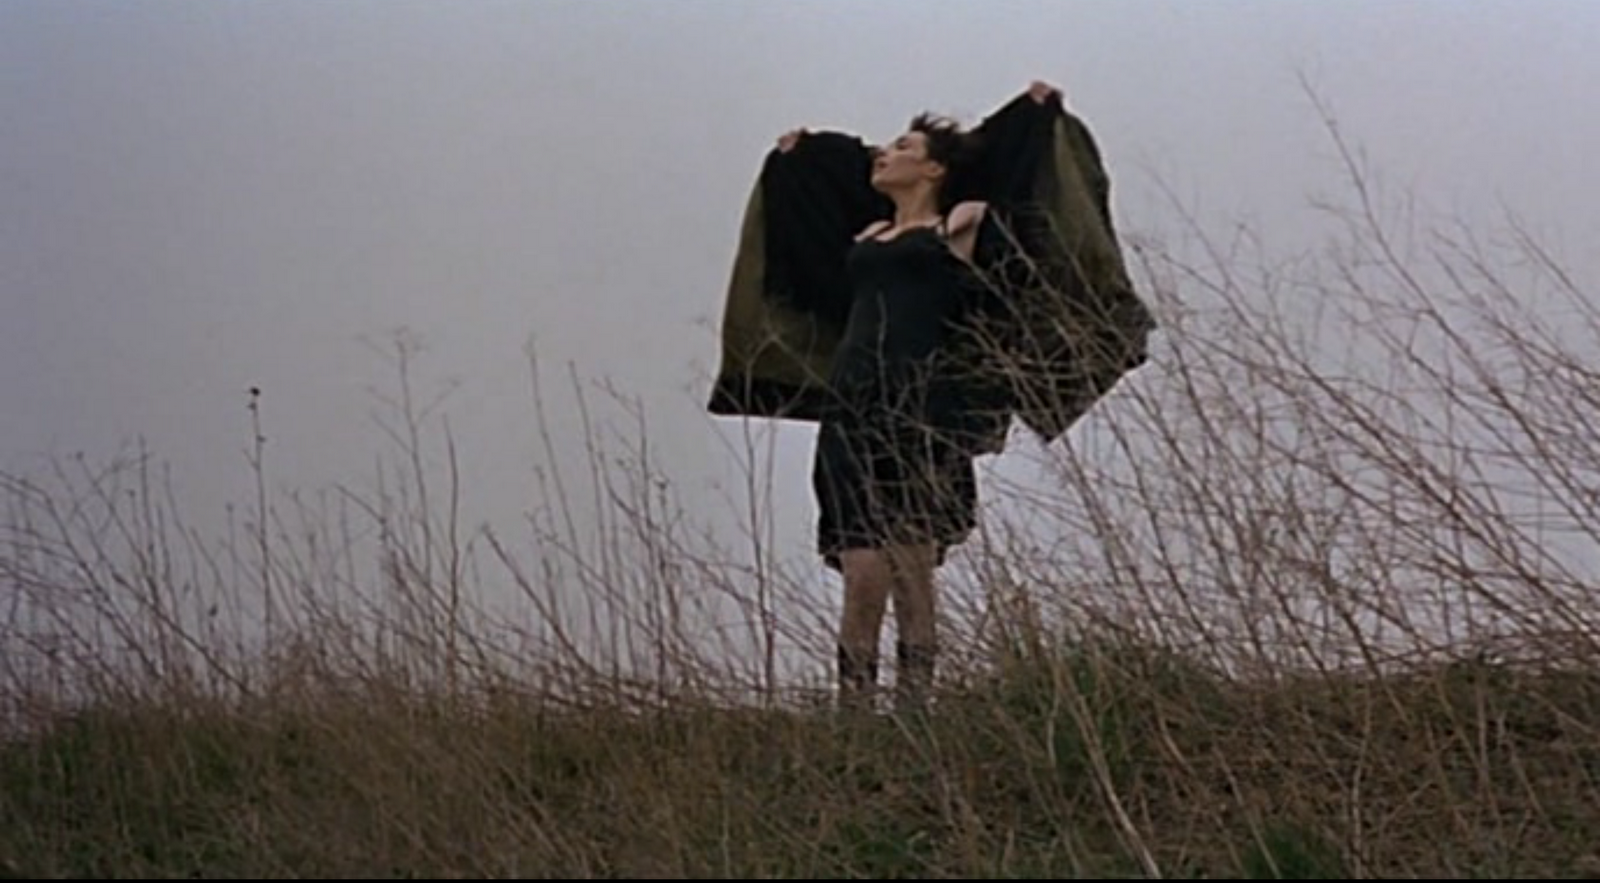 Movie-Trouble-every-day-Claire-Denis-Beatrice-Dalle-2001-www.lylybye.blogspot.com_9